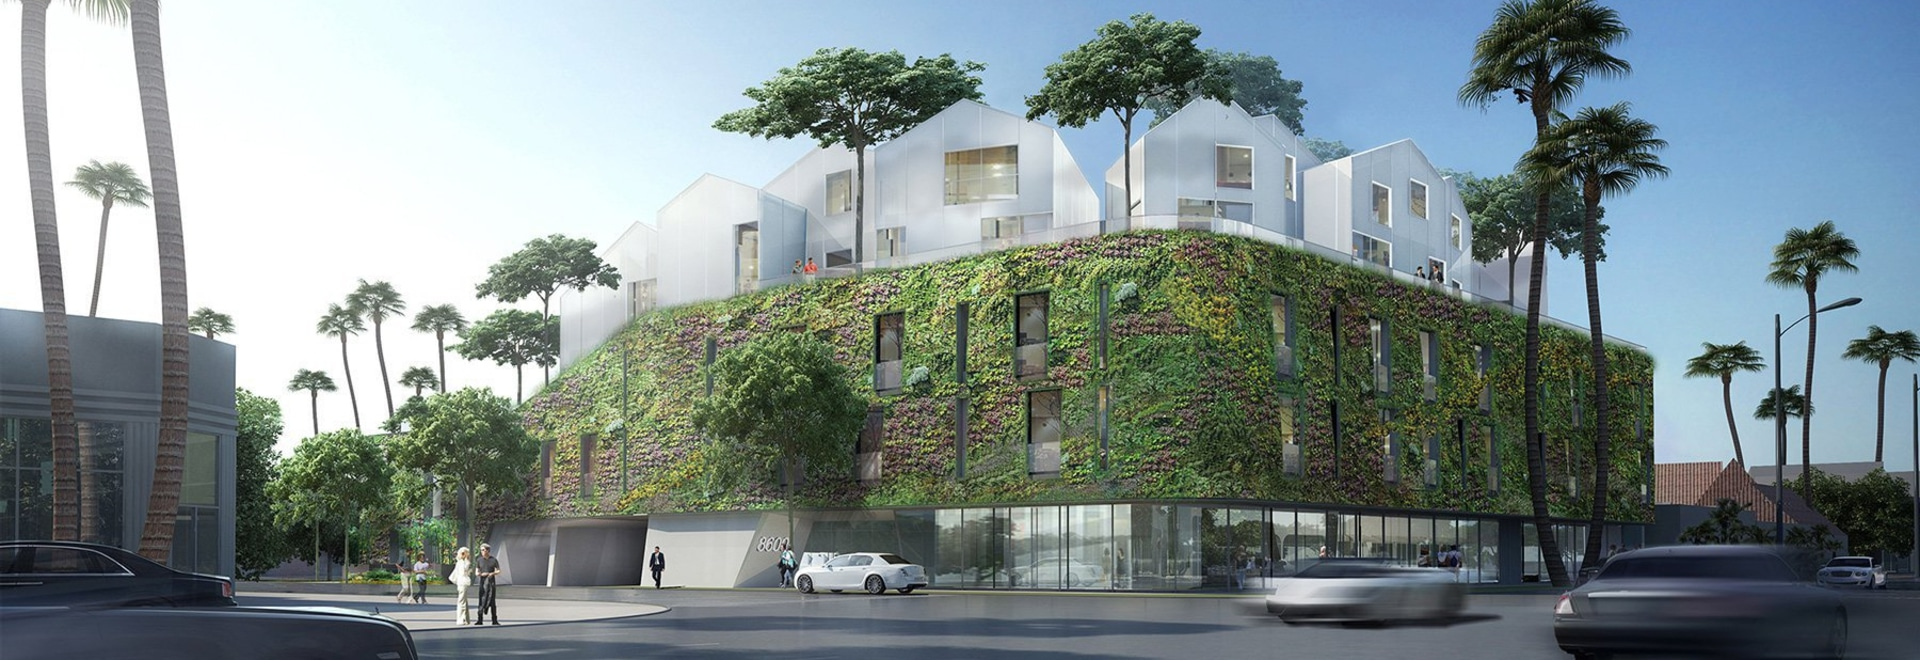 MAD architects' first US project, a hilltop residential village, tops out in beverly hills